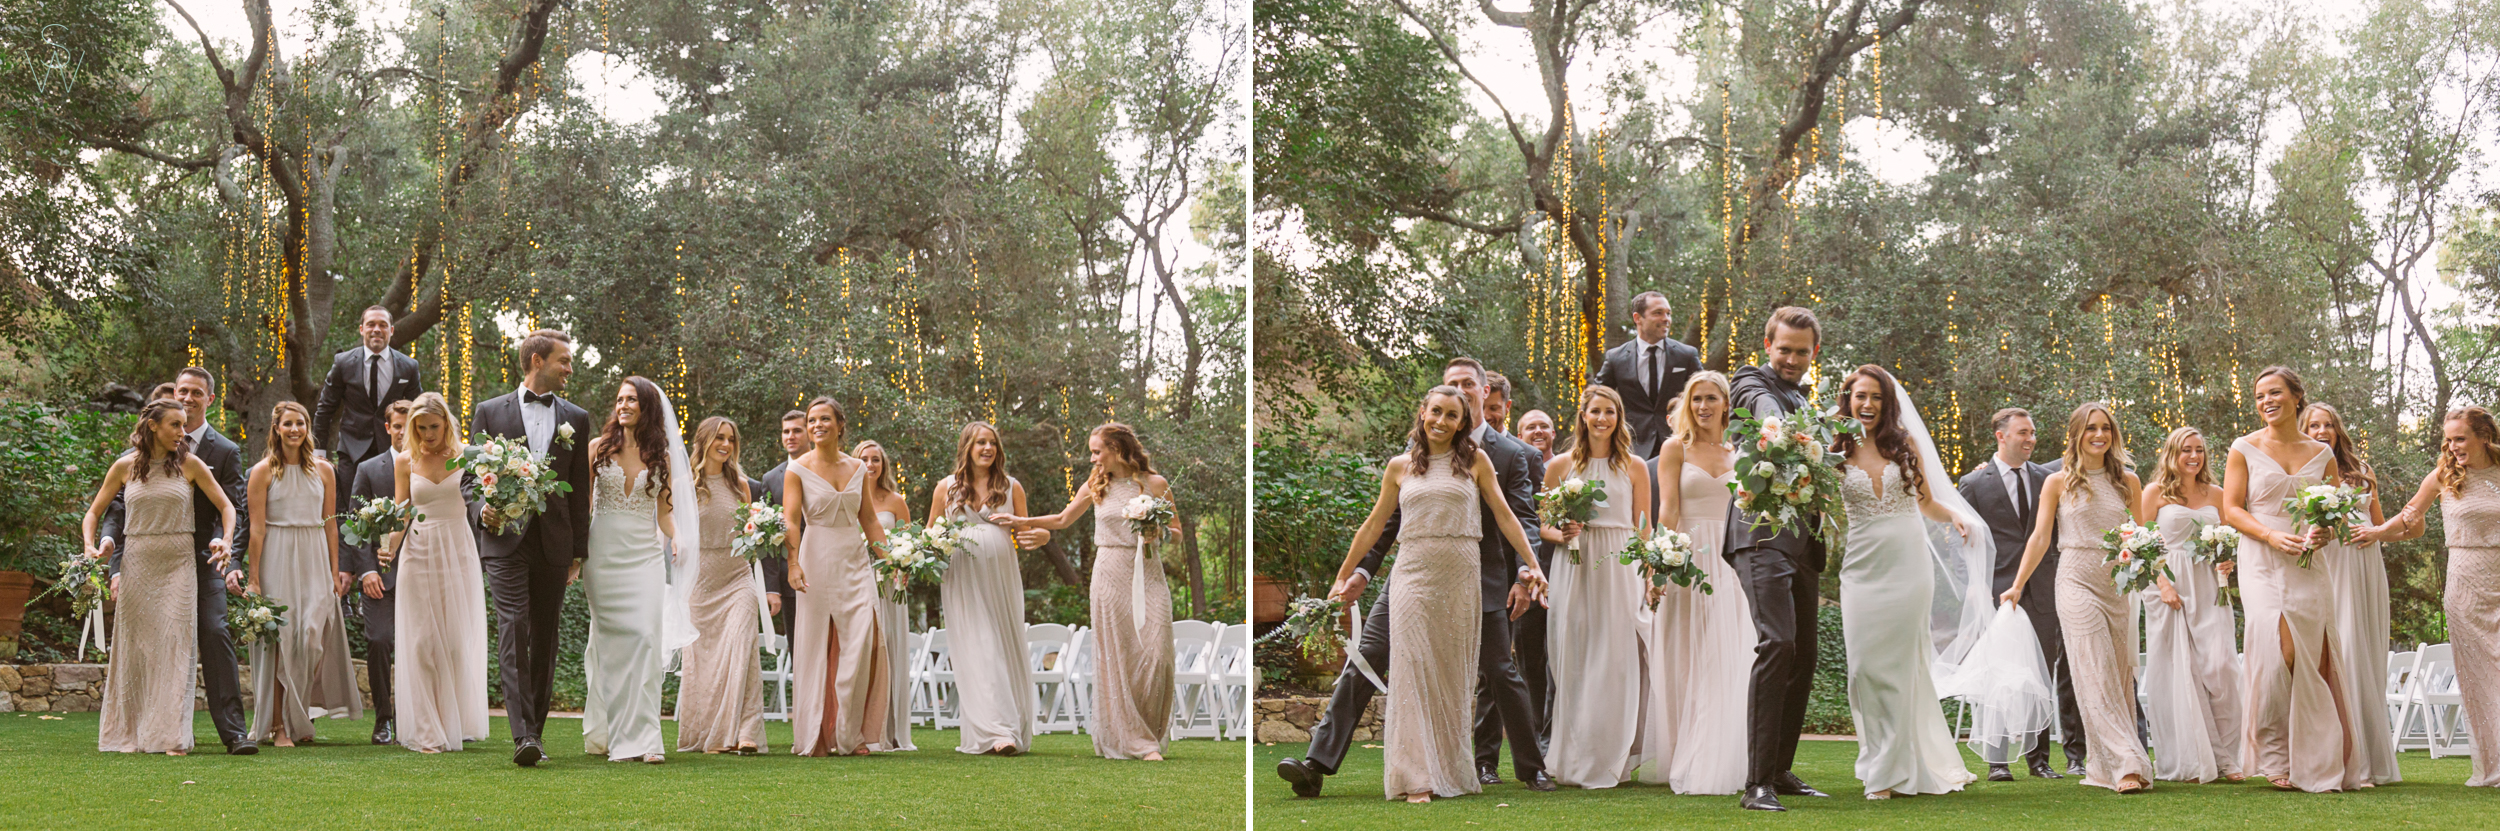 157Calamigos.ranch.shewanders.wedding.bridal.party.photography.JPG